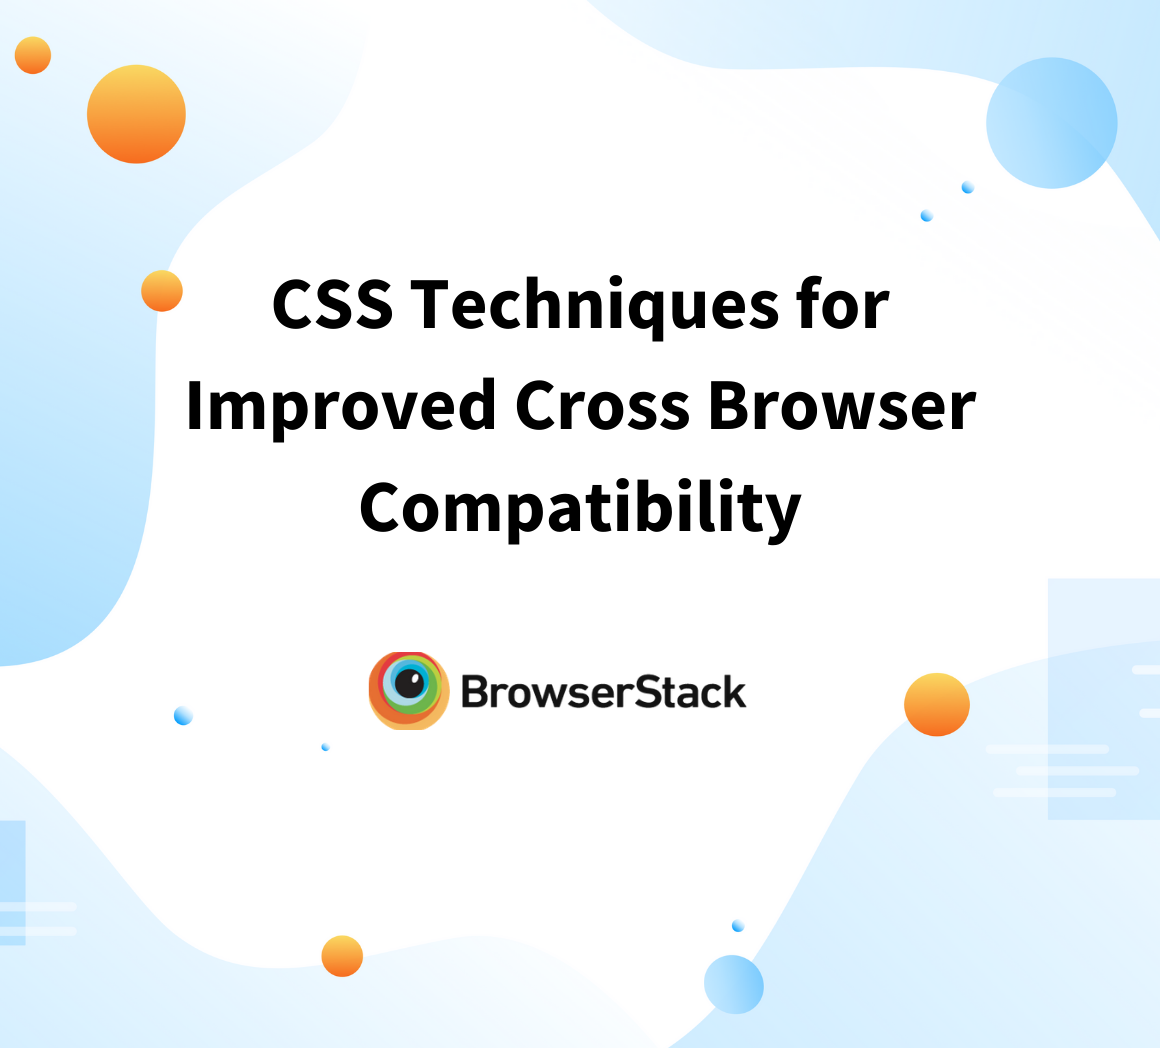 CSS techniques for Improved Cross Browser Compatibility